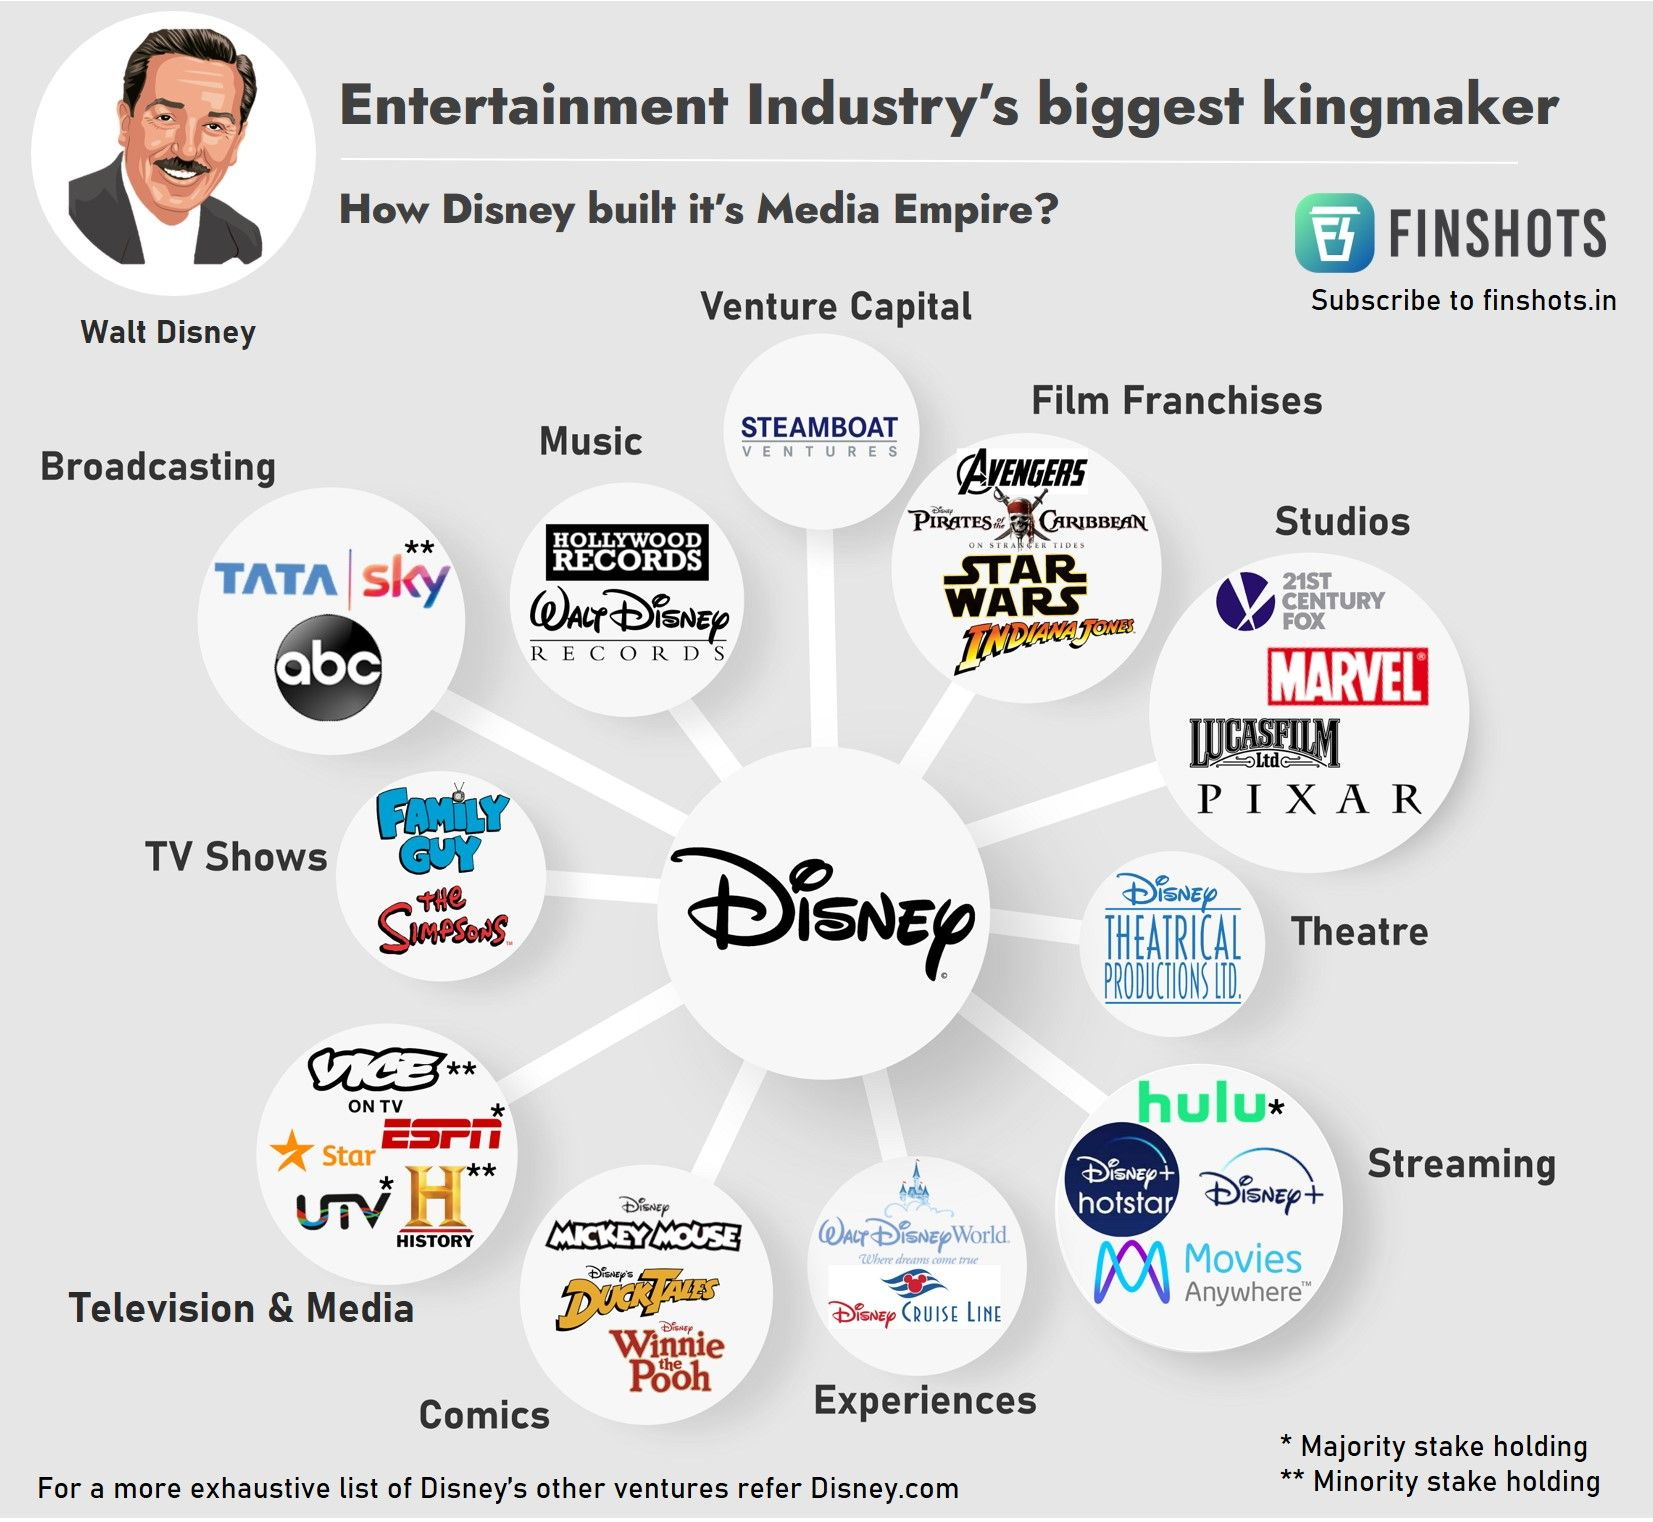 Disney- Entertainment Industry's biggest kingmaker